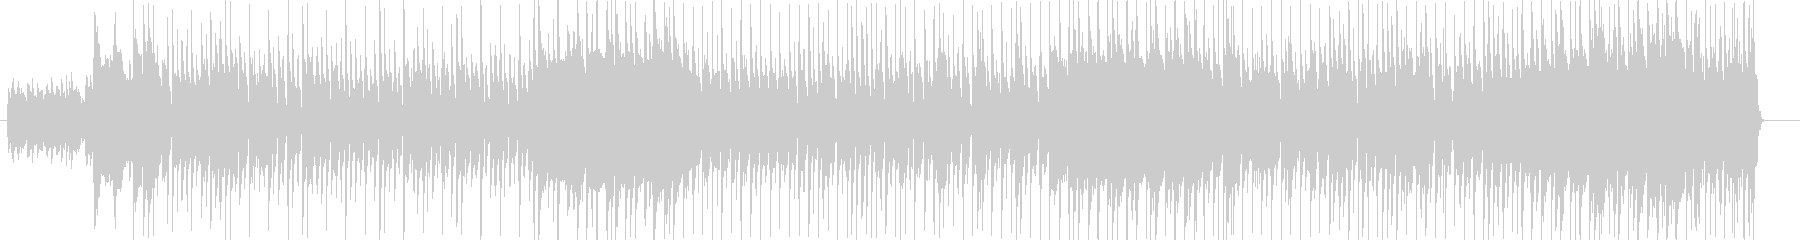 Country style image of nomadic life's unreproduced waveform